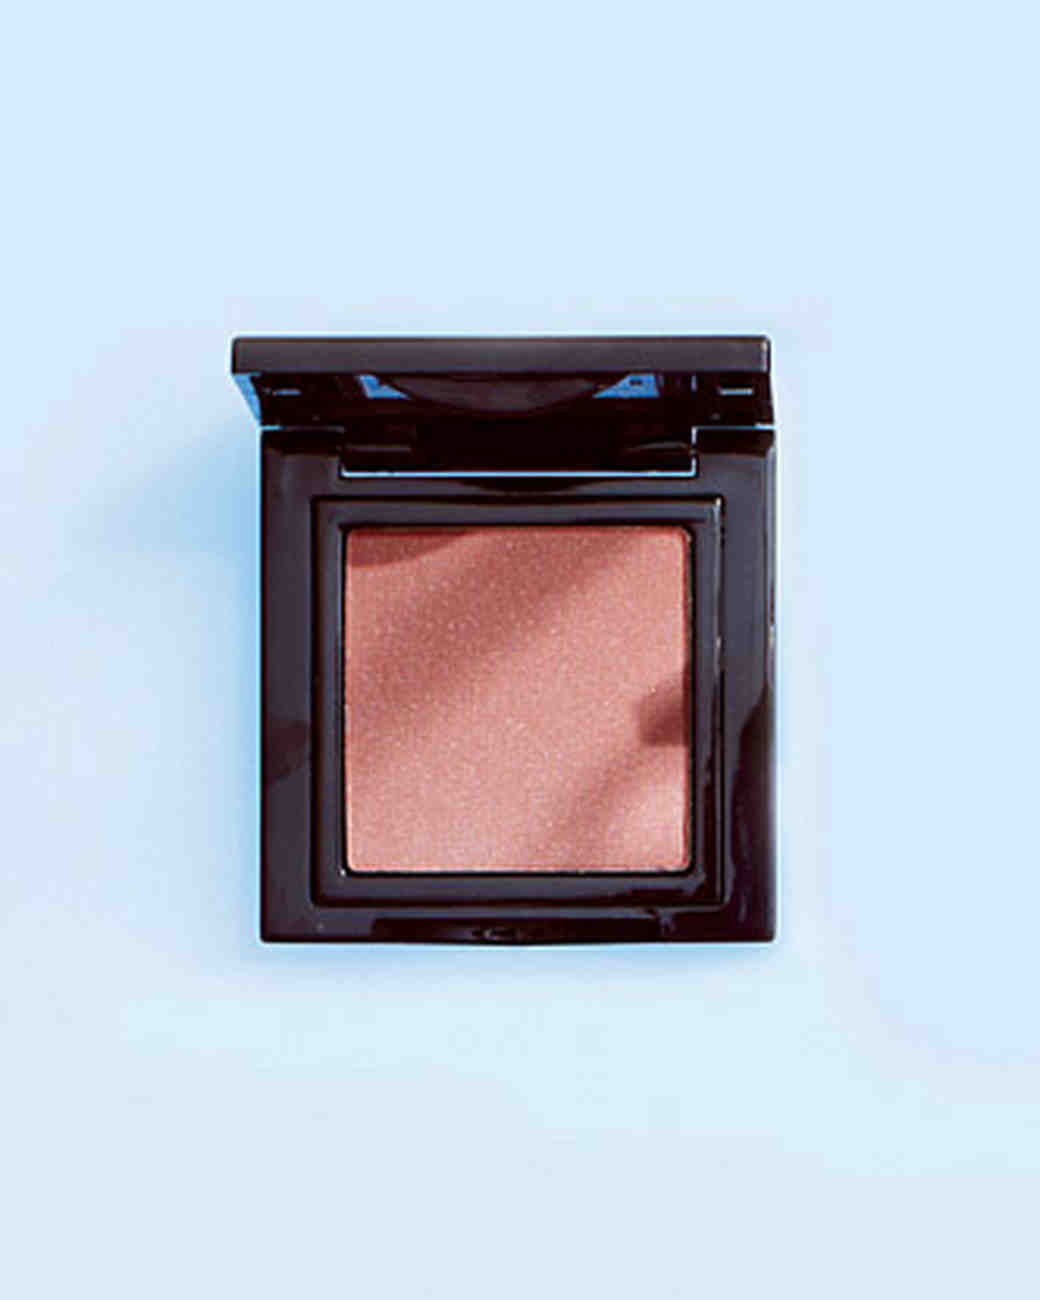 brown-blush-cosmetic-mwd107916.jpg